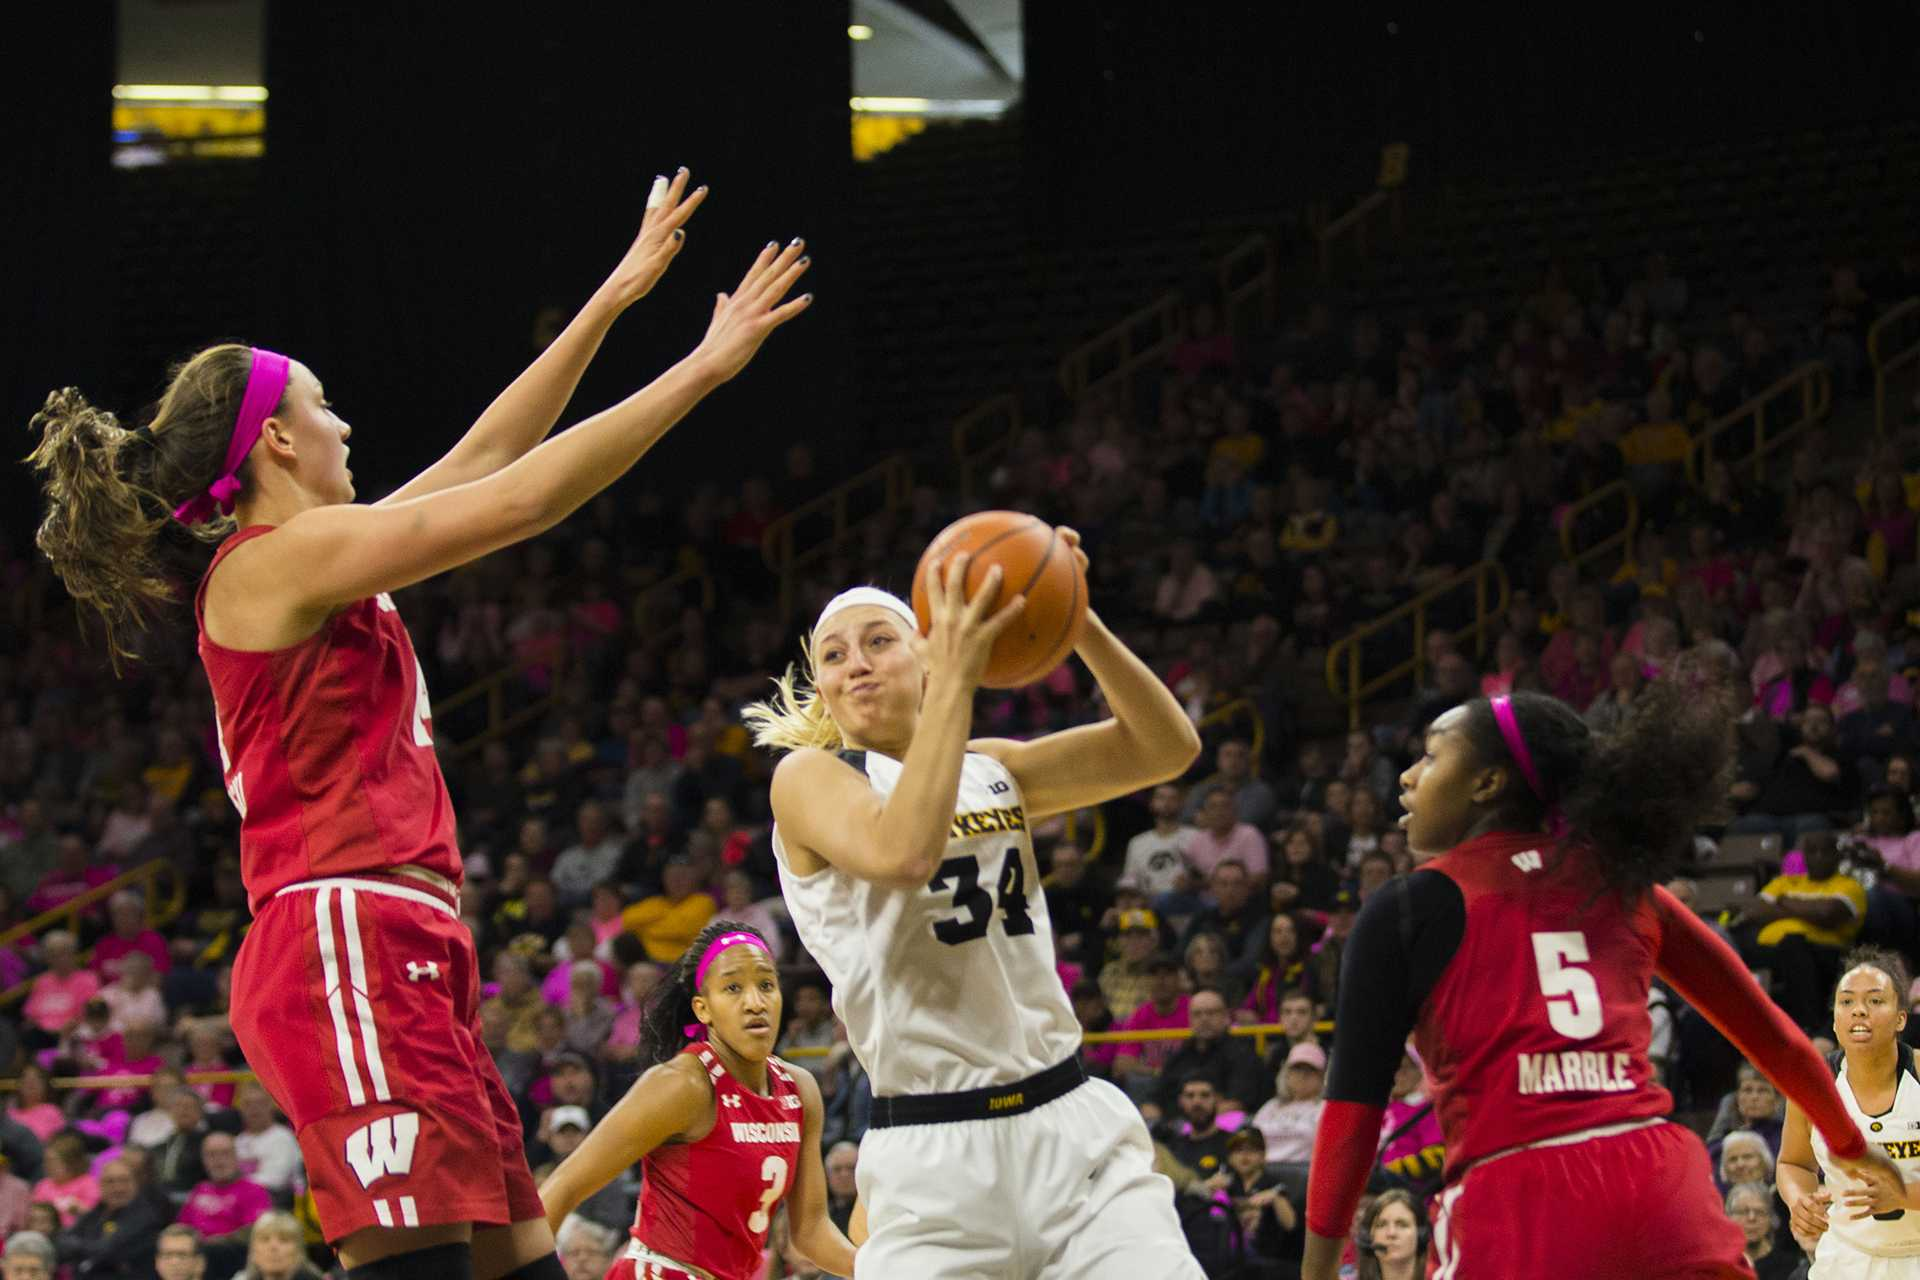 Iowa forward Carly Mohns drives to the hoop during the Iowa/Wisconsin basketball game at Carver-Hawkeye Arena on Sunday, Feb. 18, 2018. The Hawkeyes defeated the Badgers, 88-61. (Lily Smith/The Daily Iowan)